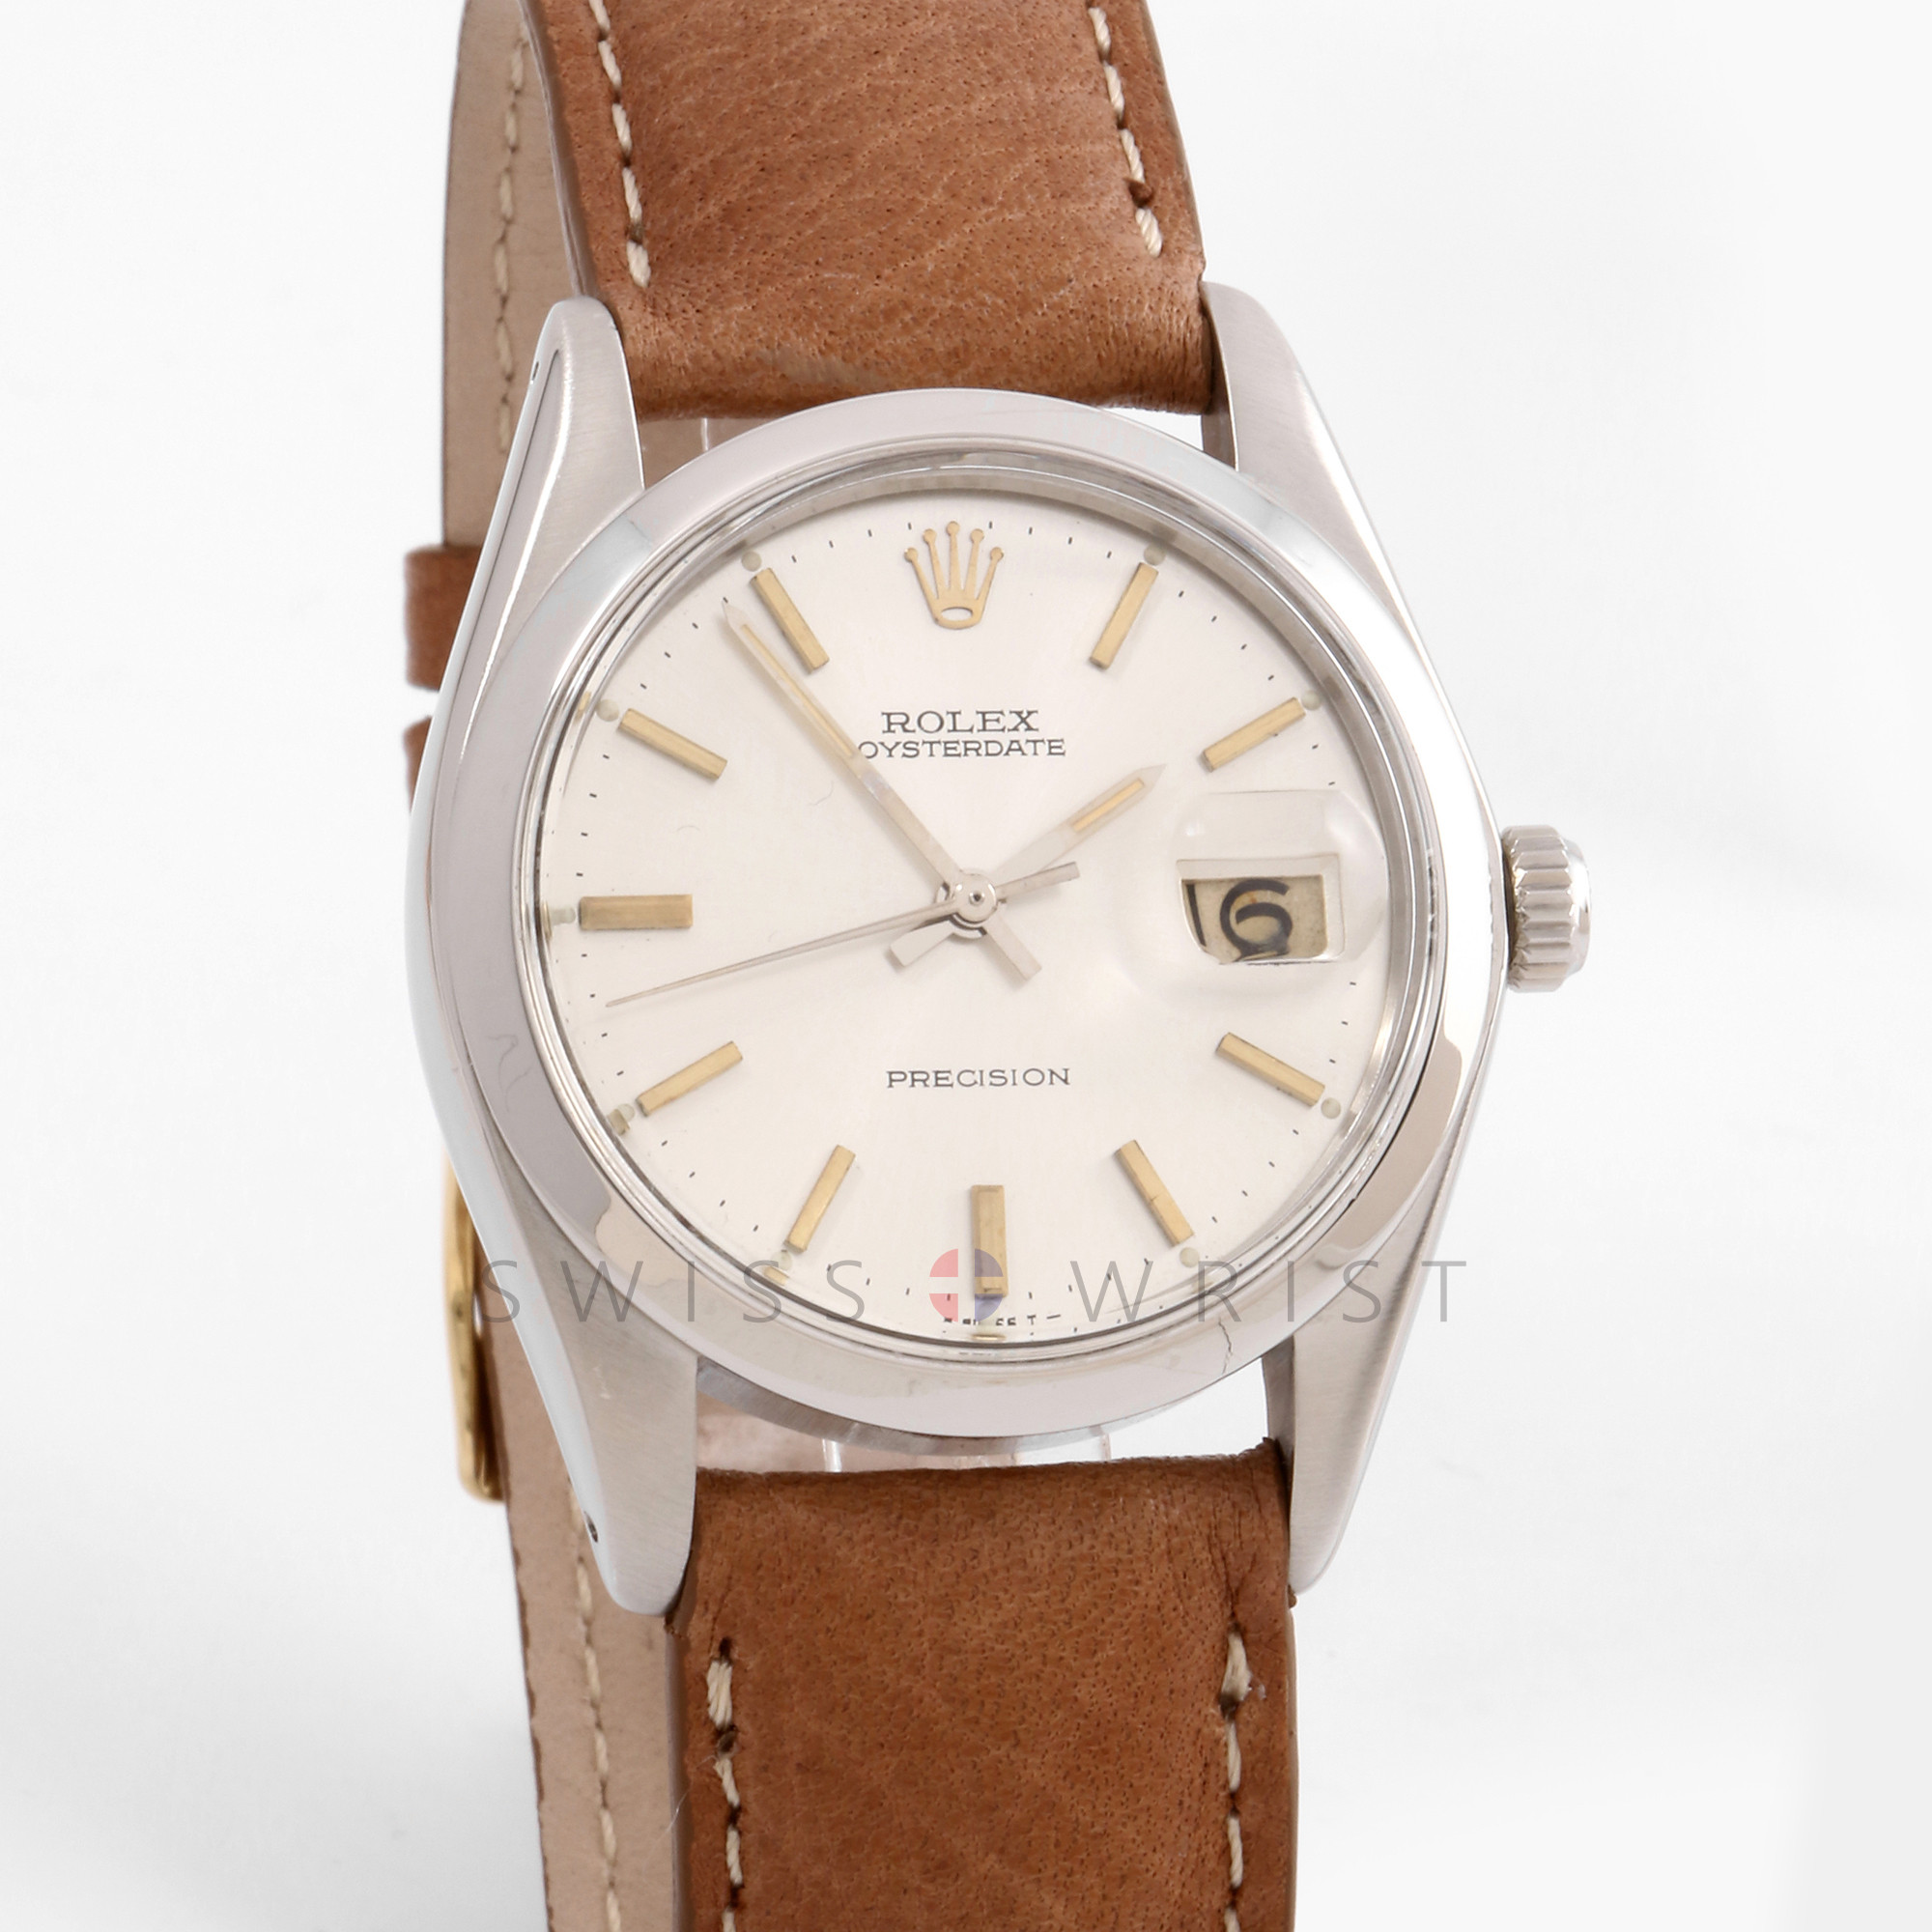 Rolex Oyster Date 34mm 6694 Stainless Steel w/ Silver Stick Dial & Smooth Bezel with Brown Leather Strap - Men's Pre-Owned Watch